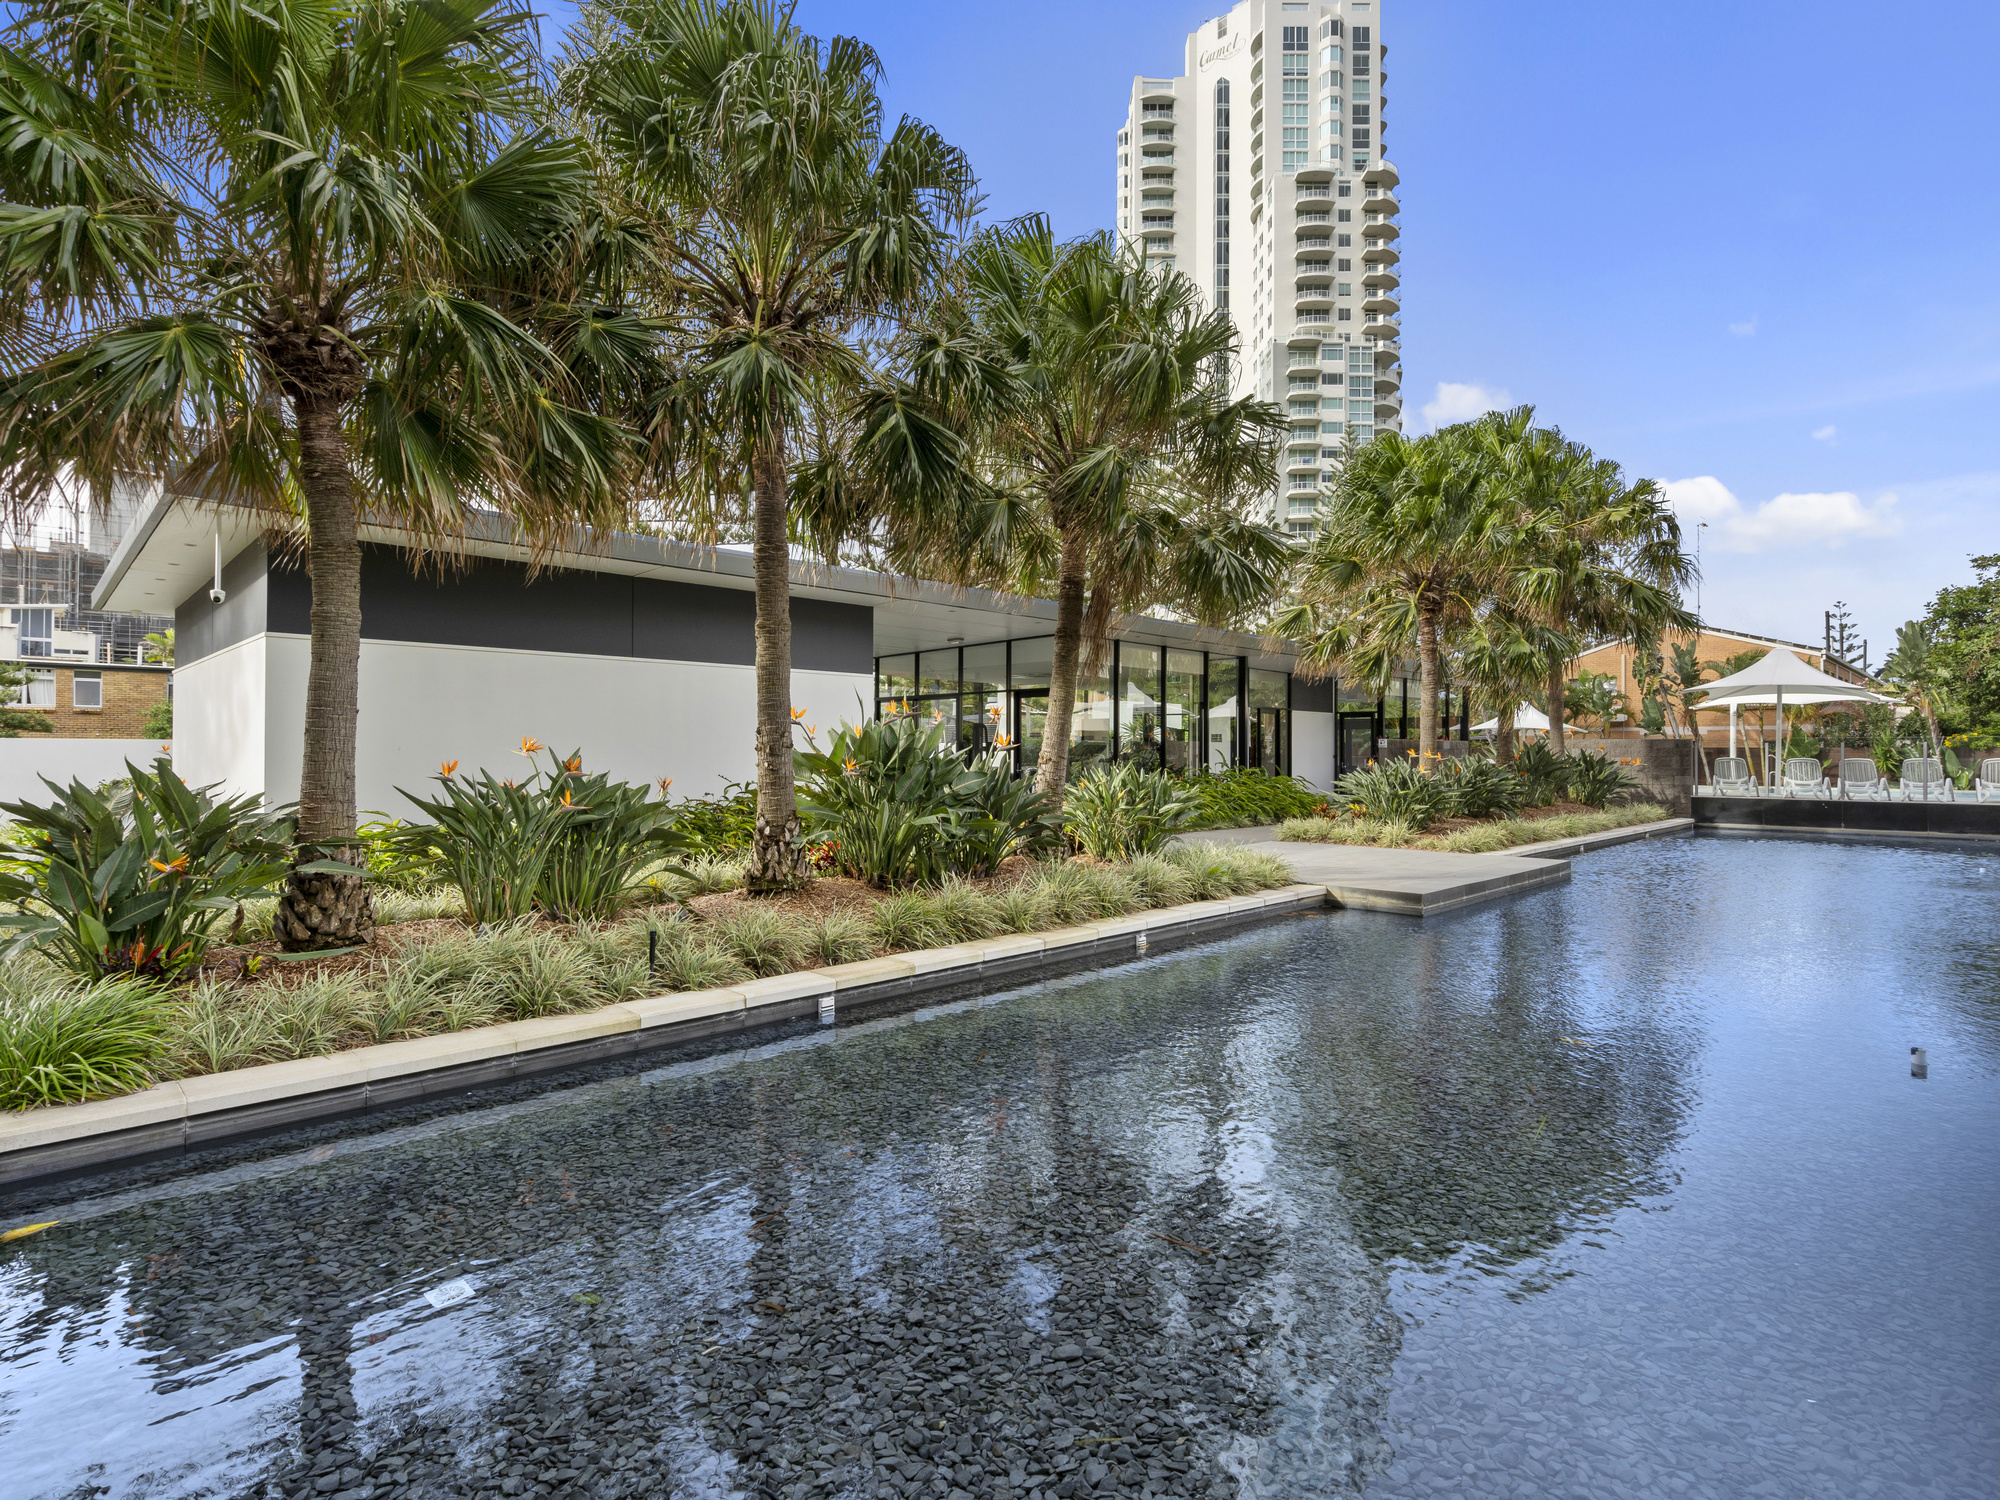 Real Estate | Gold Coast | Chevron Realty | 013 Open2view Id685729 301 14 George Avenue